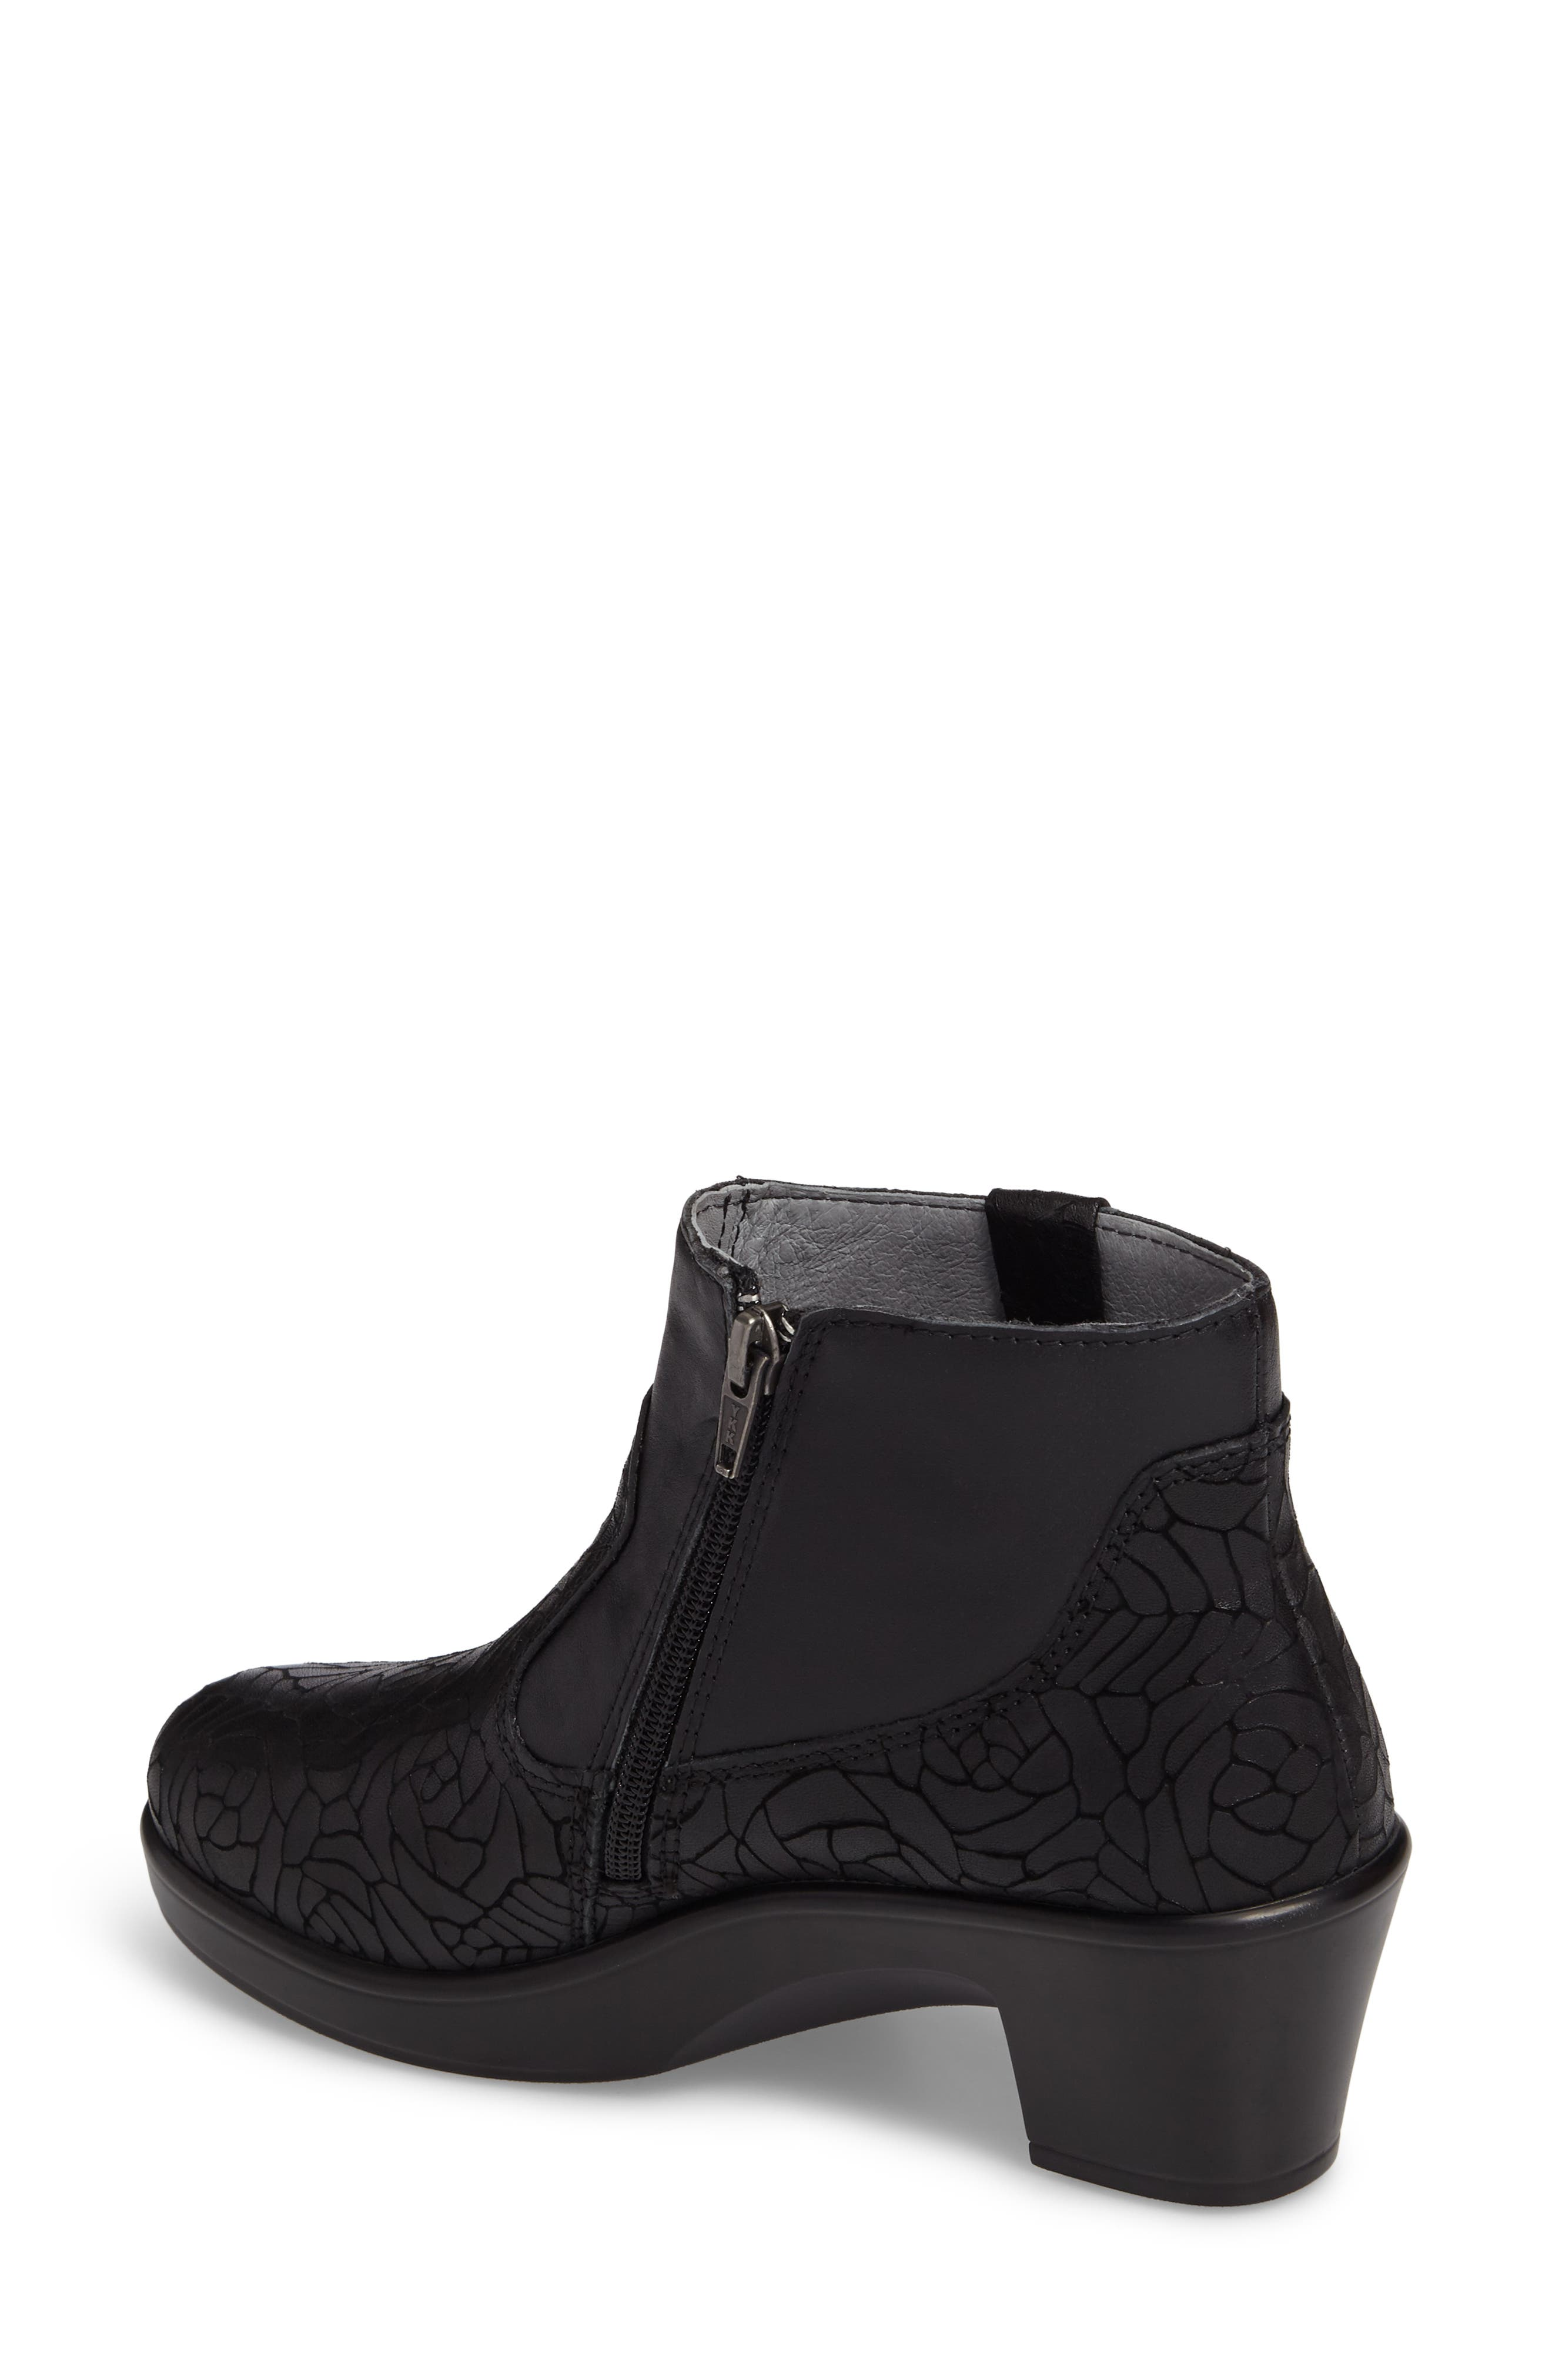 Hayden Bootie,                             Alternate thumbnail 2, color,                             FLORAL NOTES LEATHER